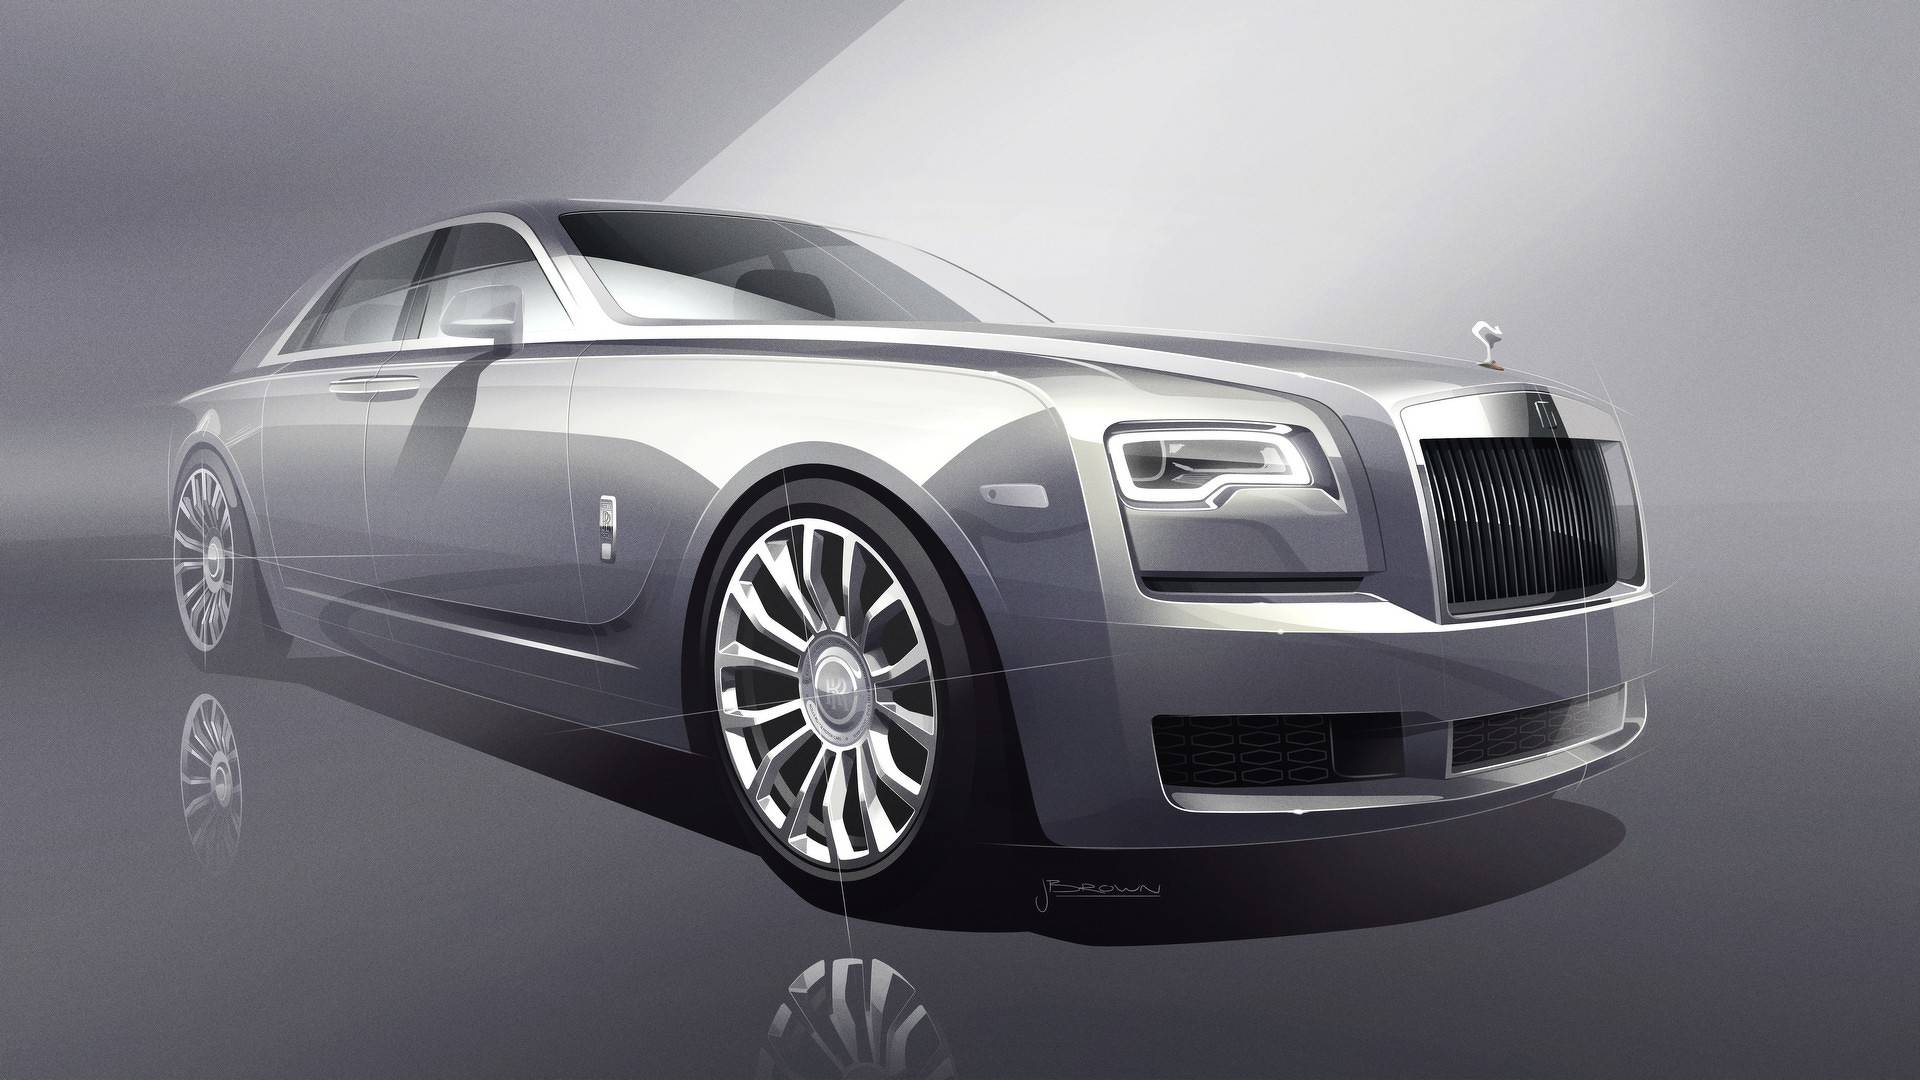 Rolls Royce Reveals Stunning Limited Silver Ghost Collection